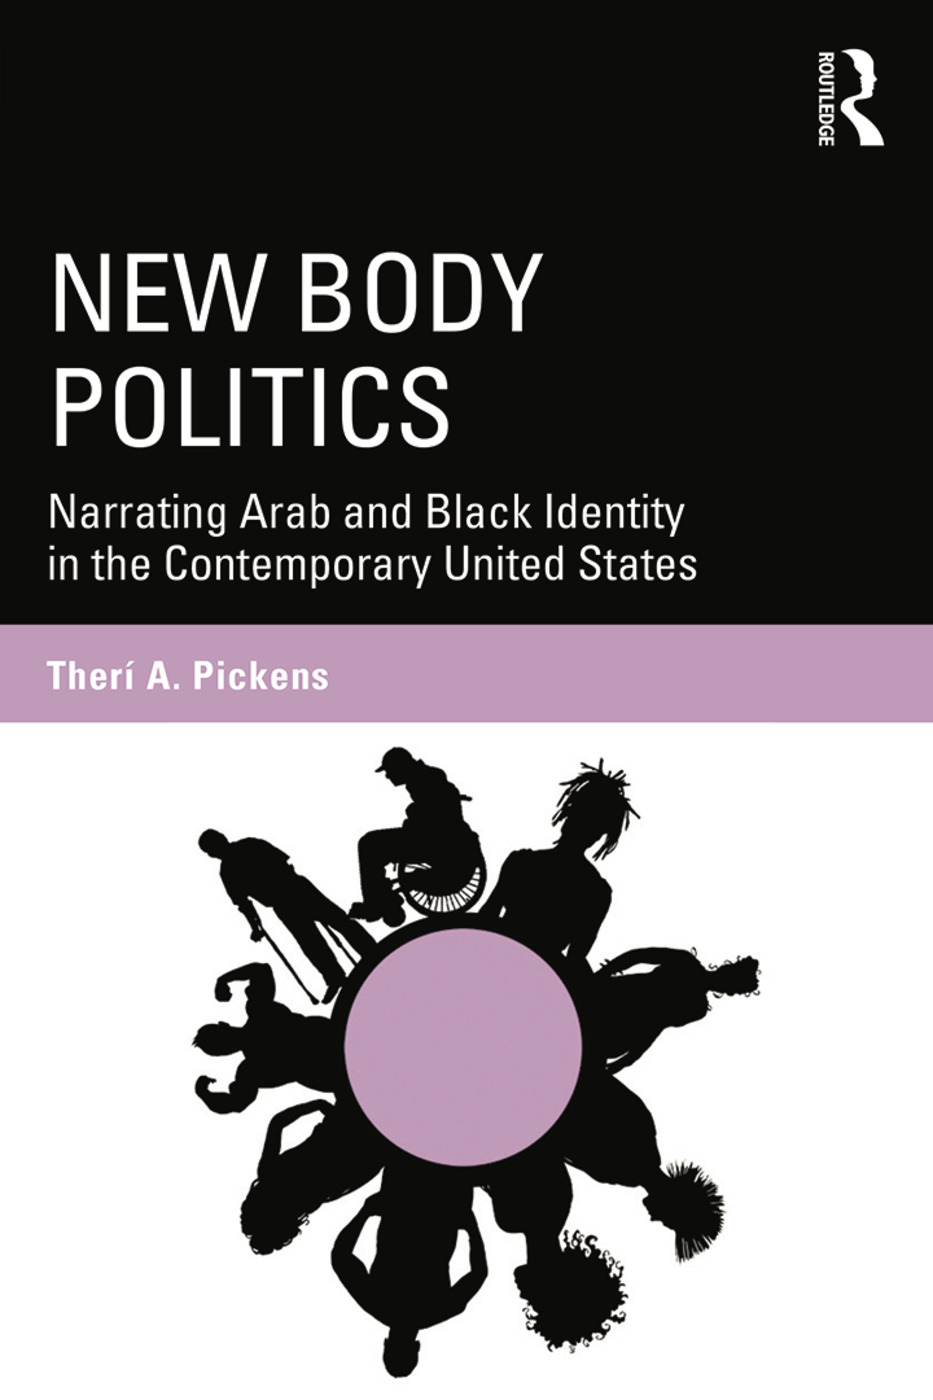 New Body Politics: Narrating Arab and Black Identity in the Contemporary United States book cover